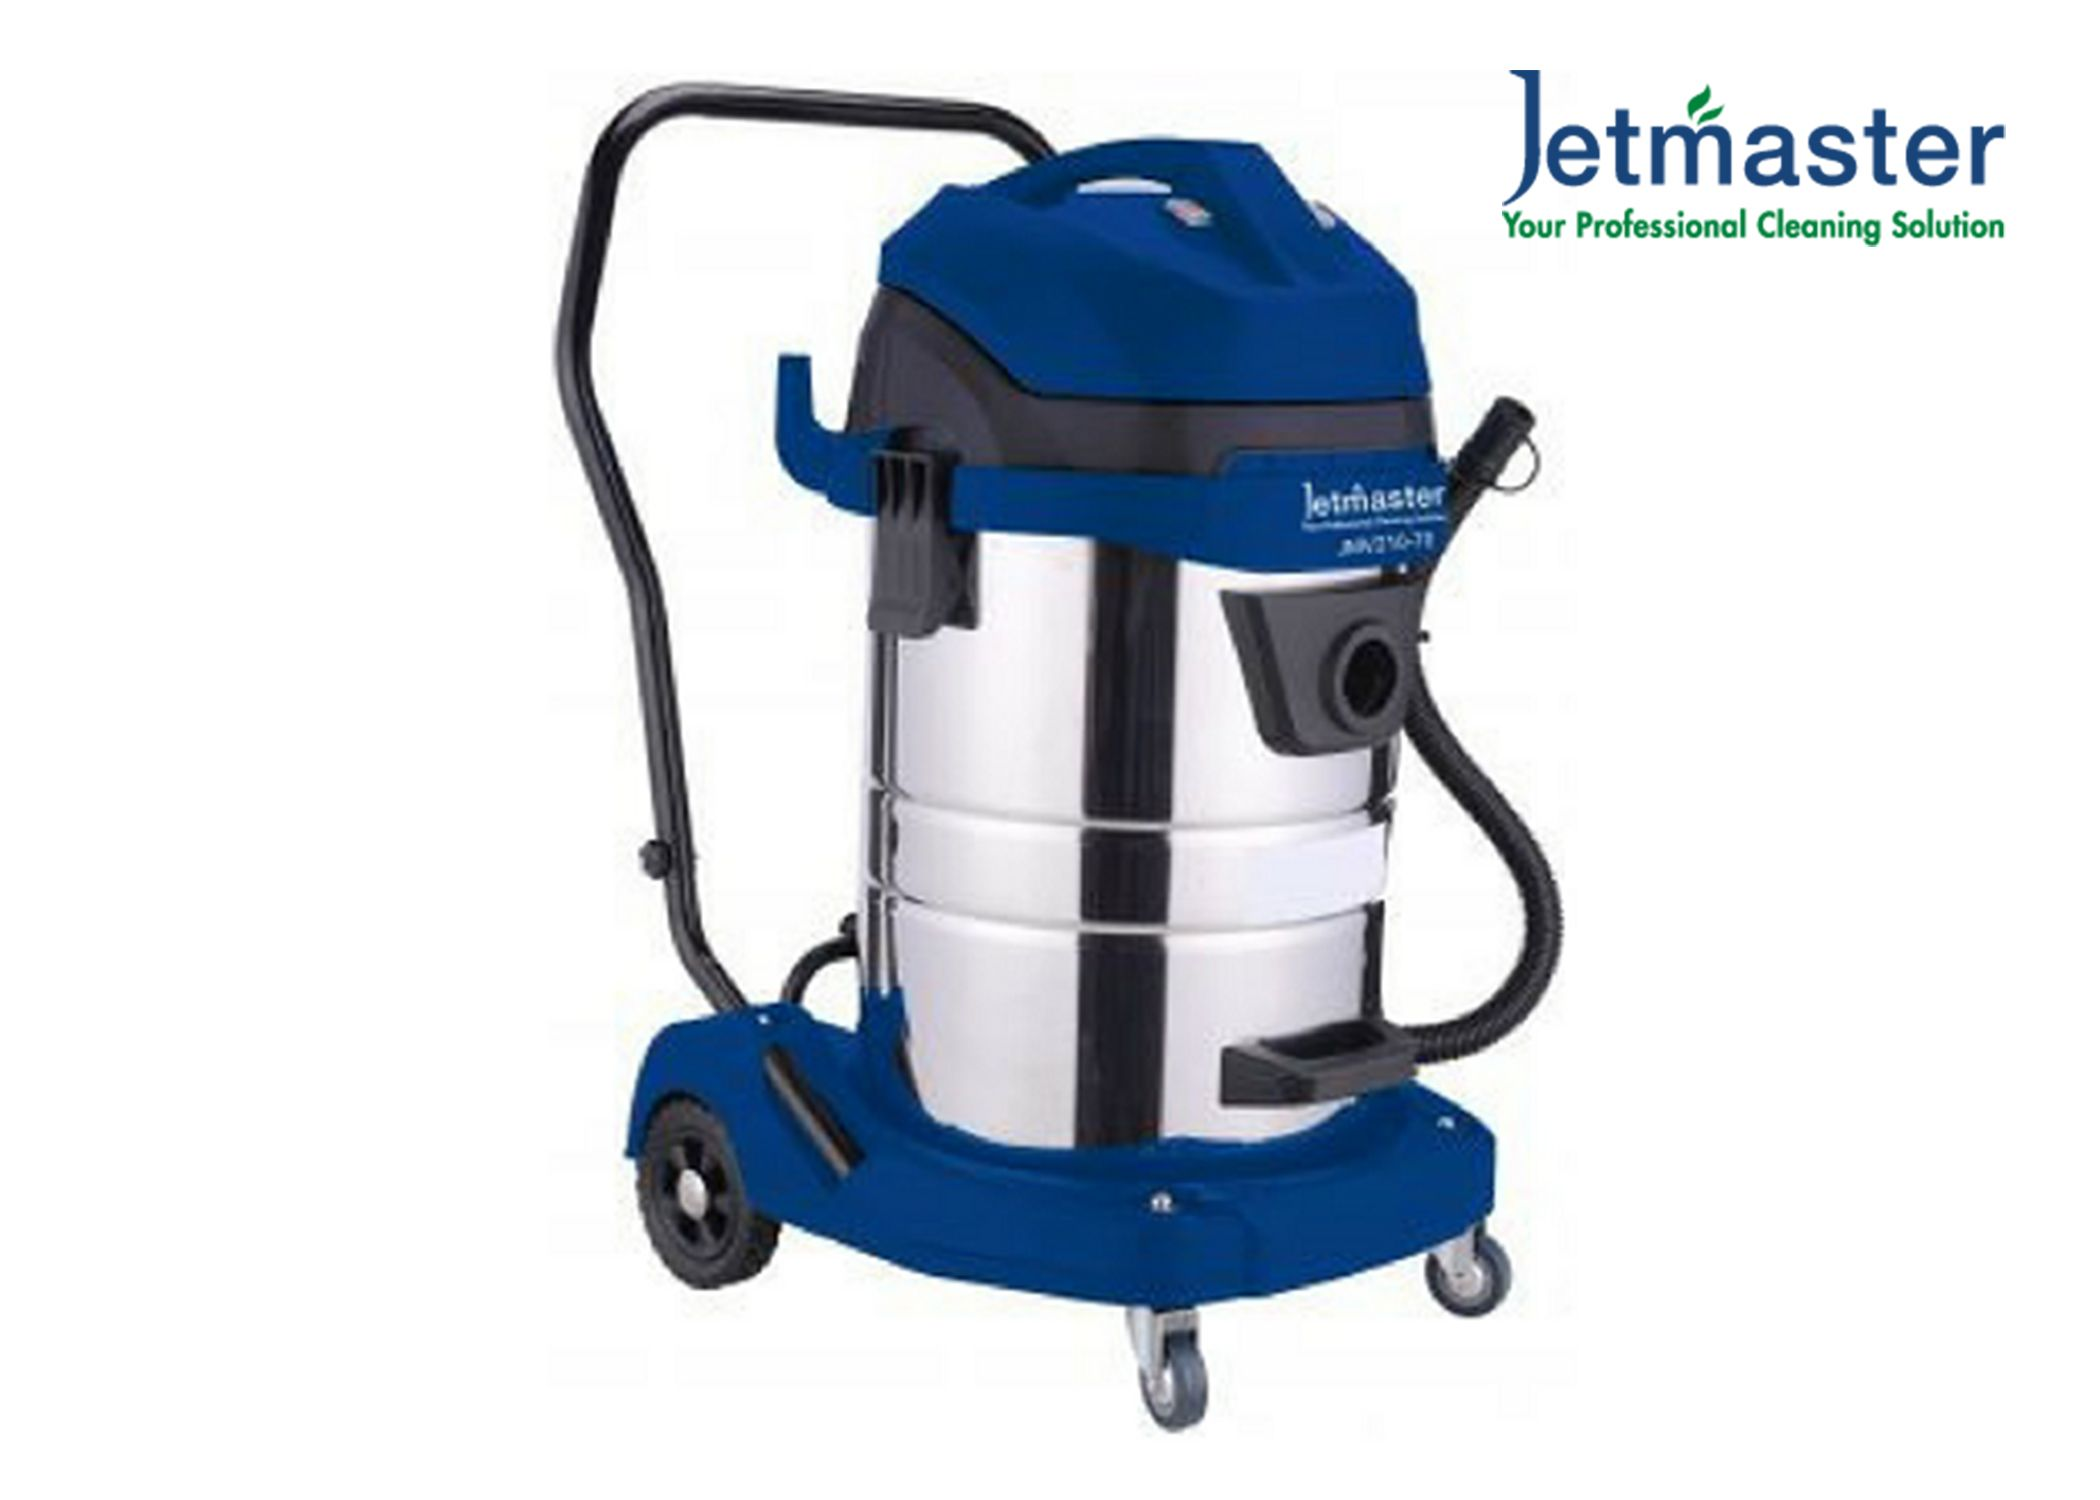 Industrial Vacuum Cleaner (Jetmaster)